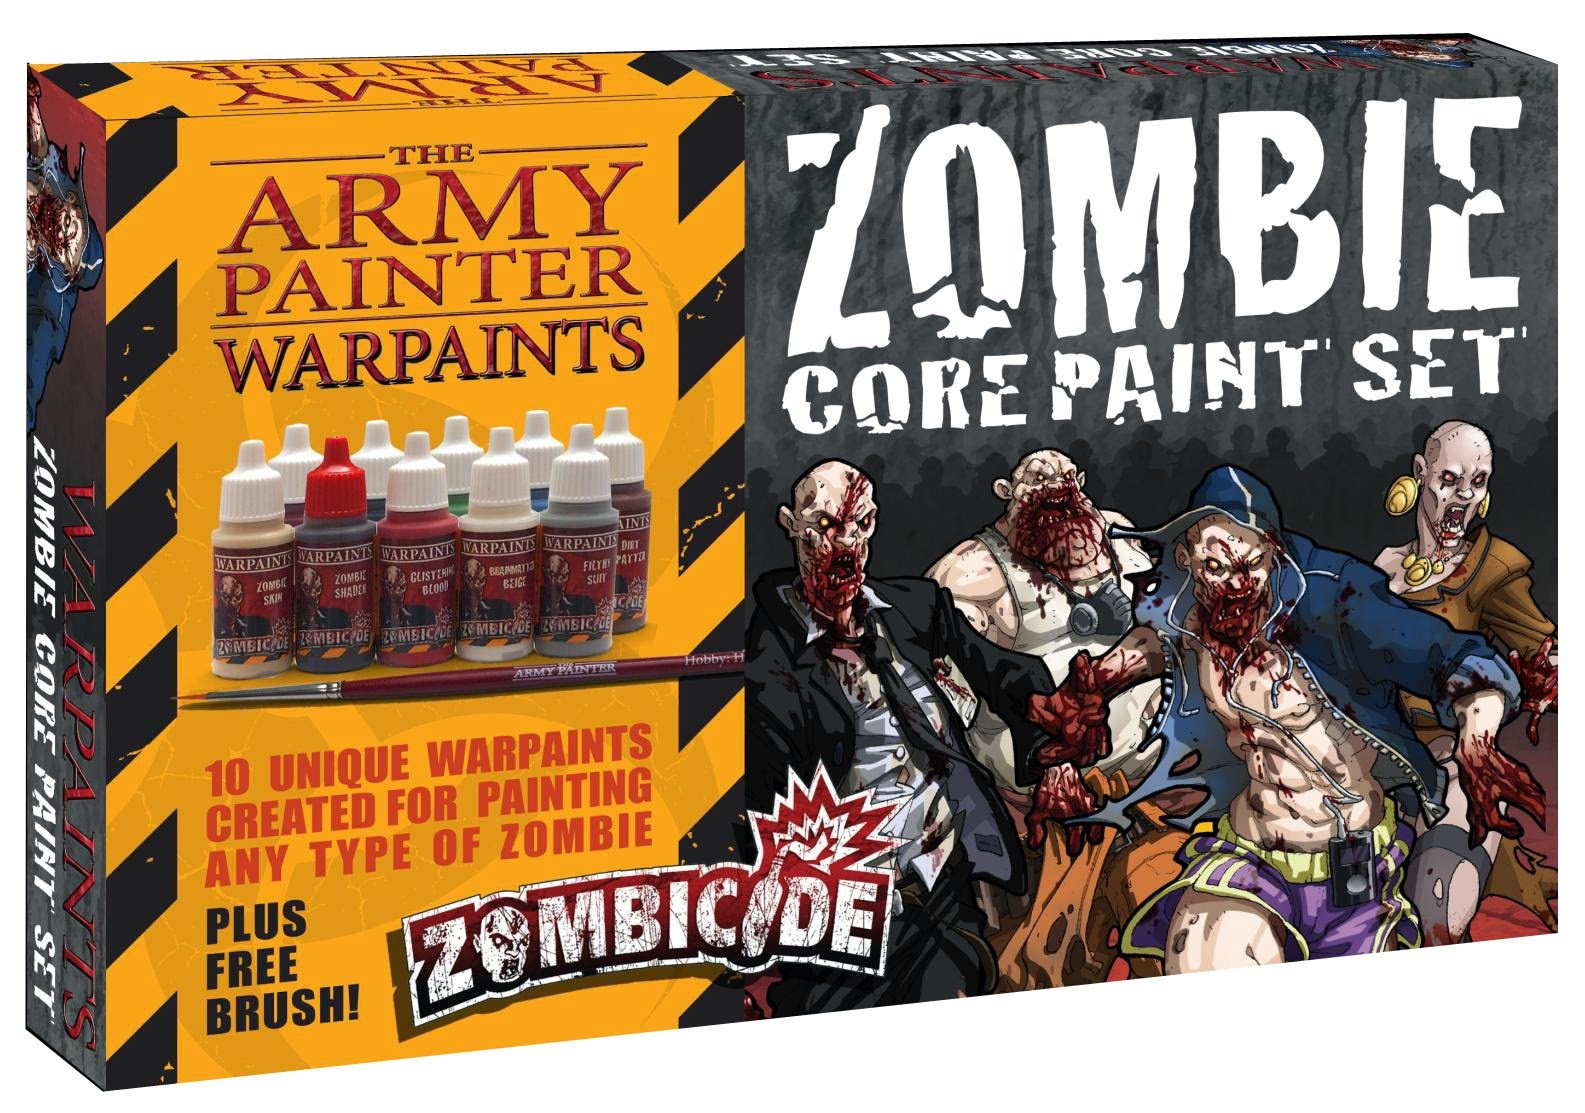 AP - Zombie core paint set (zombicide)